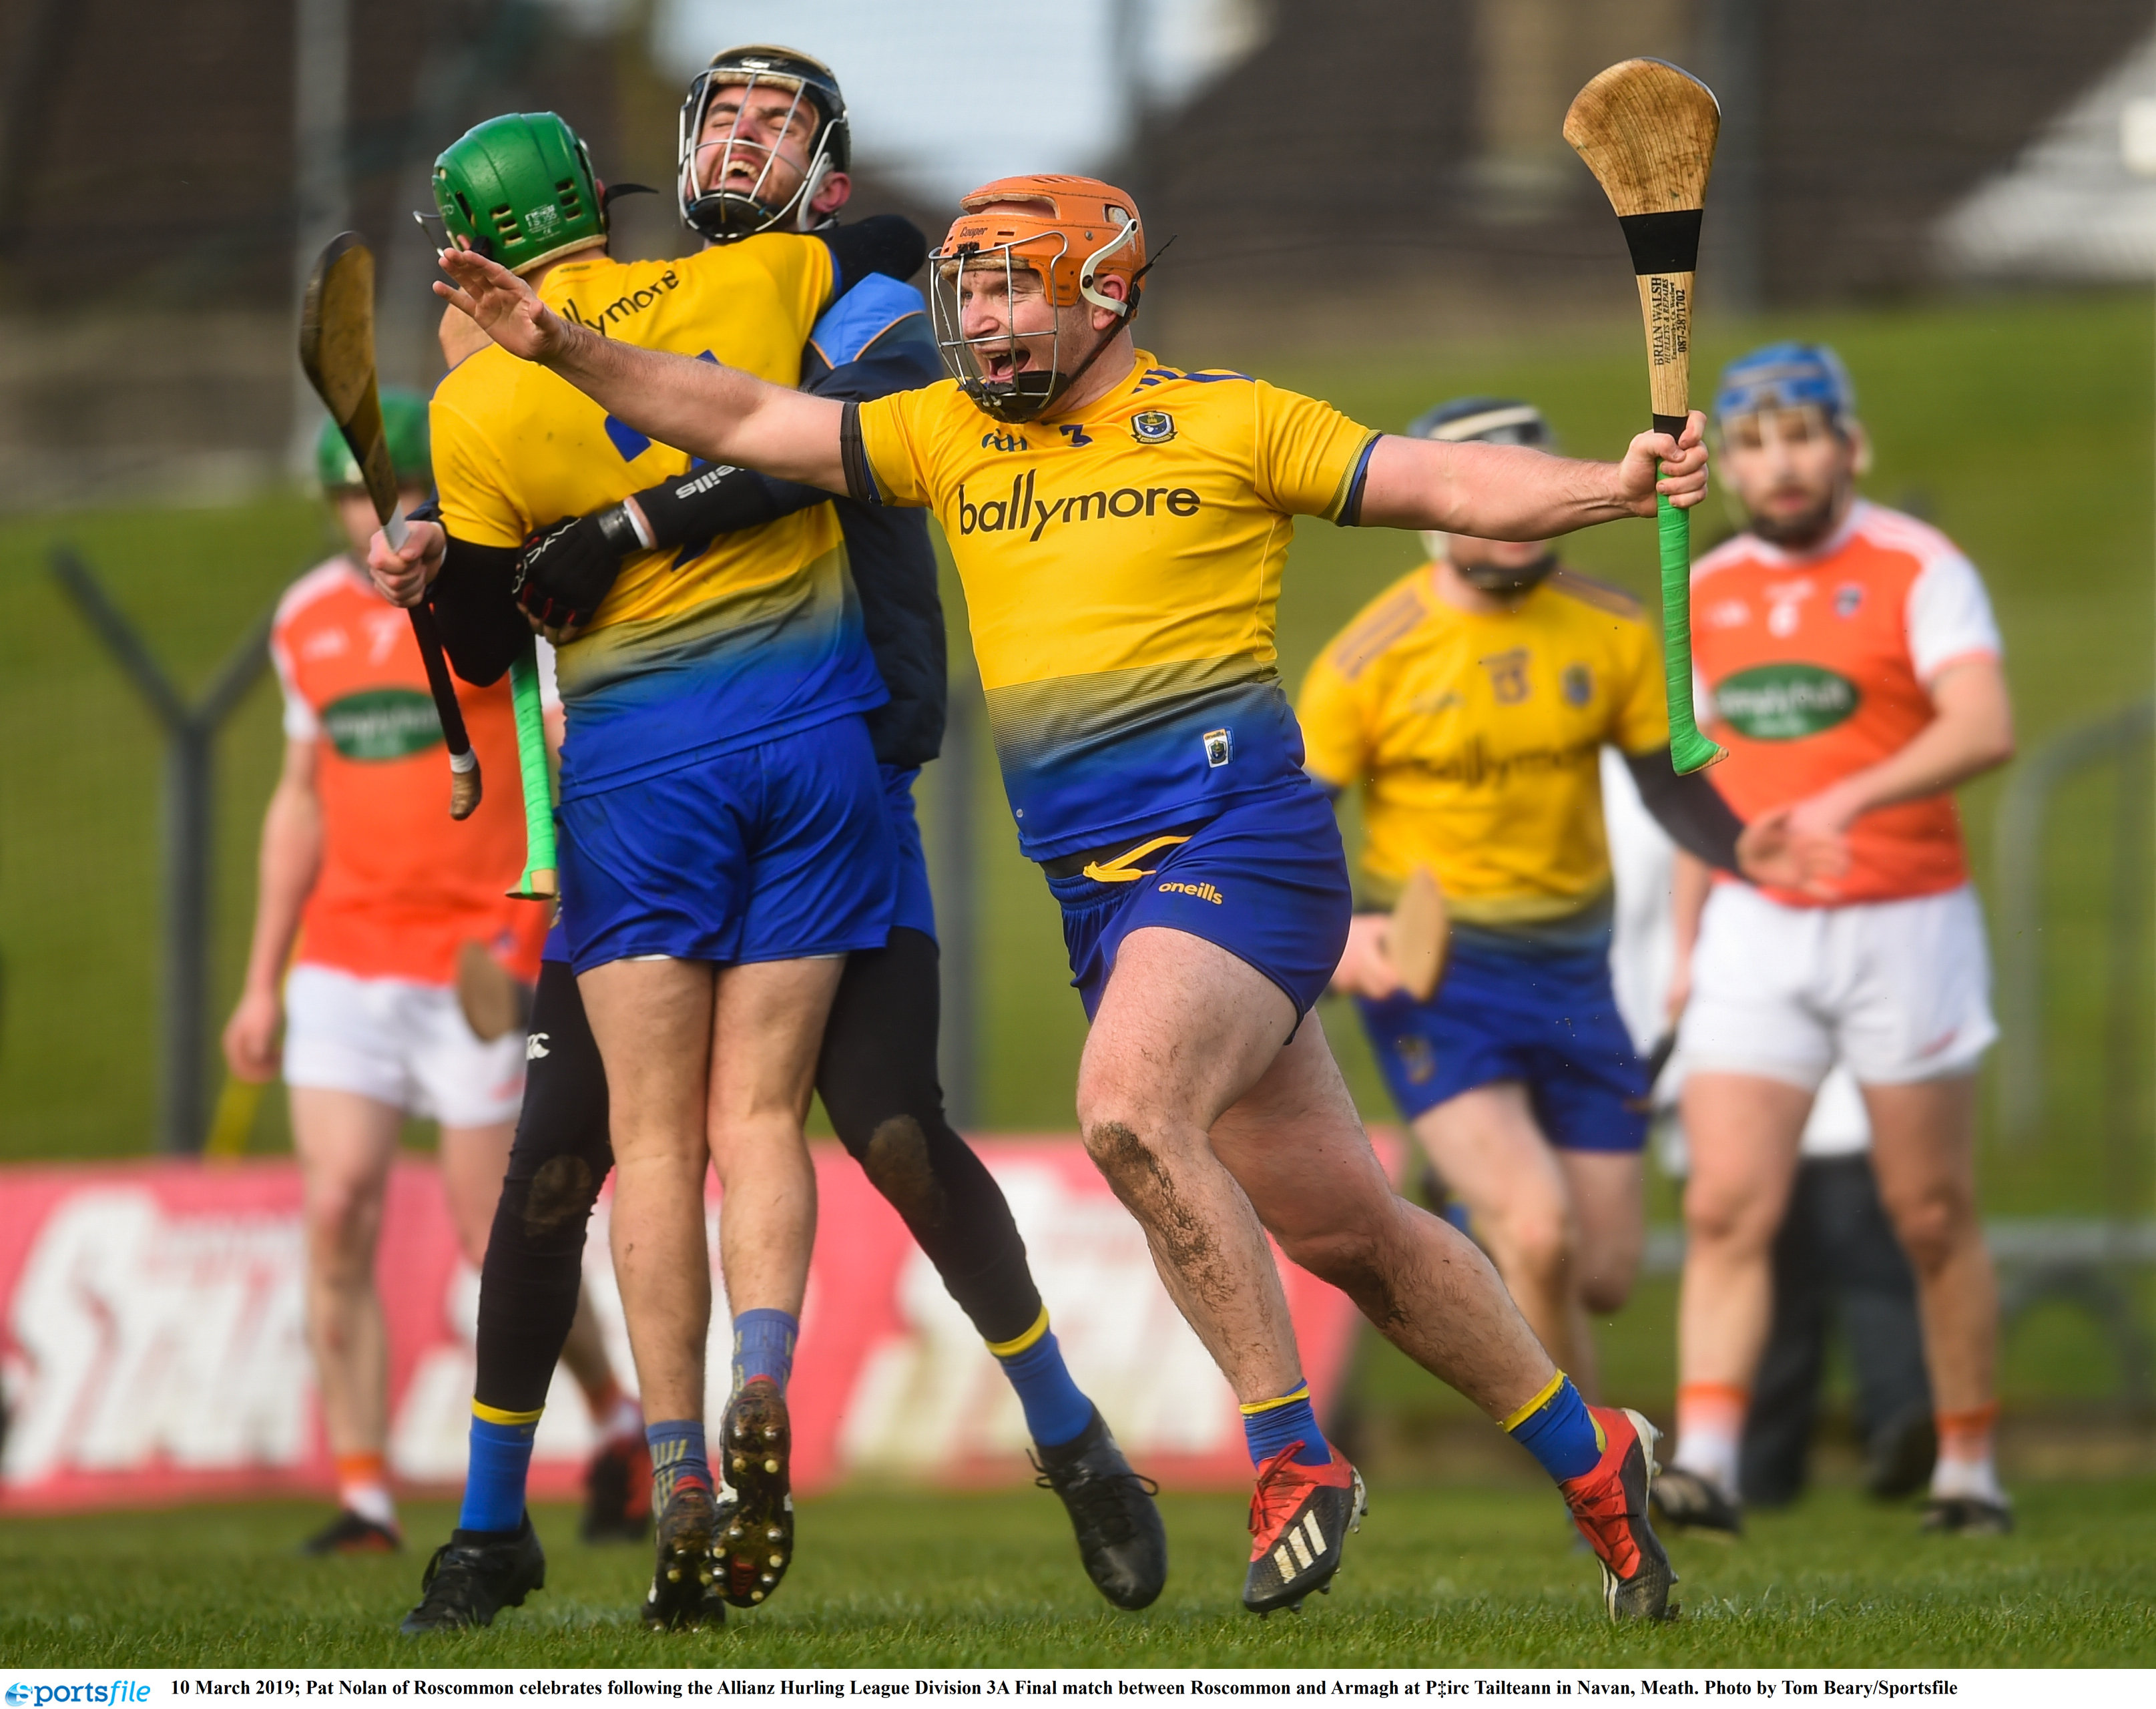 Allianz Hurling League Updates for Connacht Counties